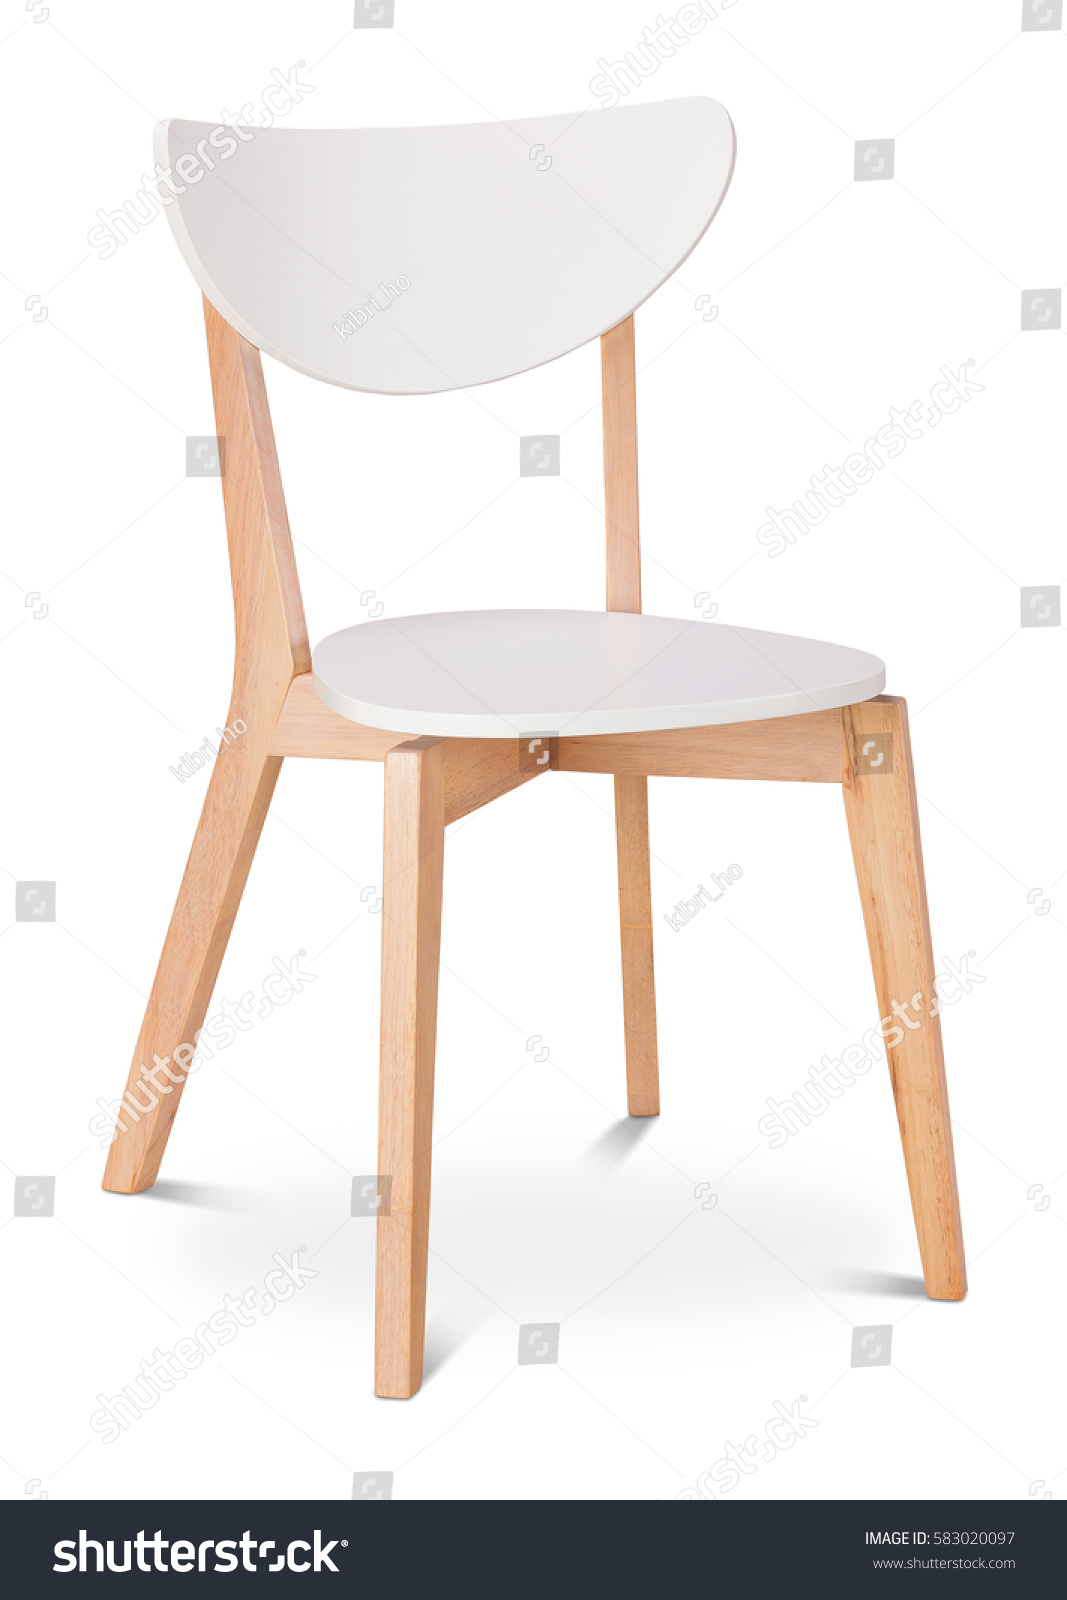 White color chair, plastic, wooden, leather chair, modern designer. Chair isolated on white background. Series of furniture #583020097